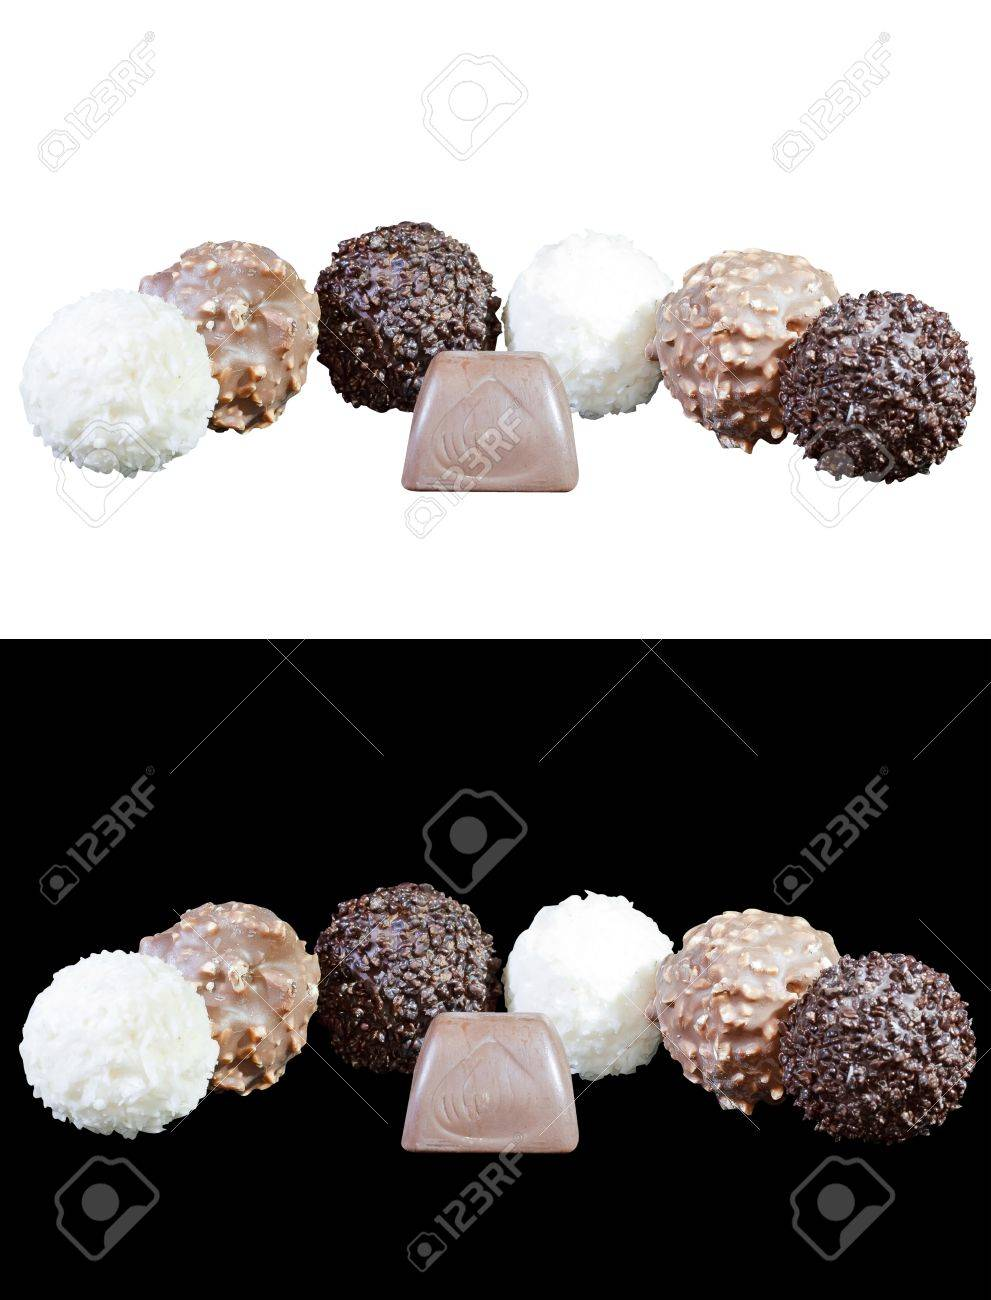 set of luxury chocolates in white, black and milk chocolate, isolated on white and black background Stock Photo - 11492571